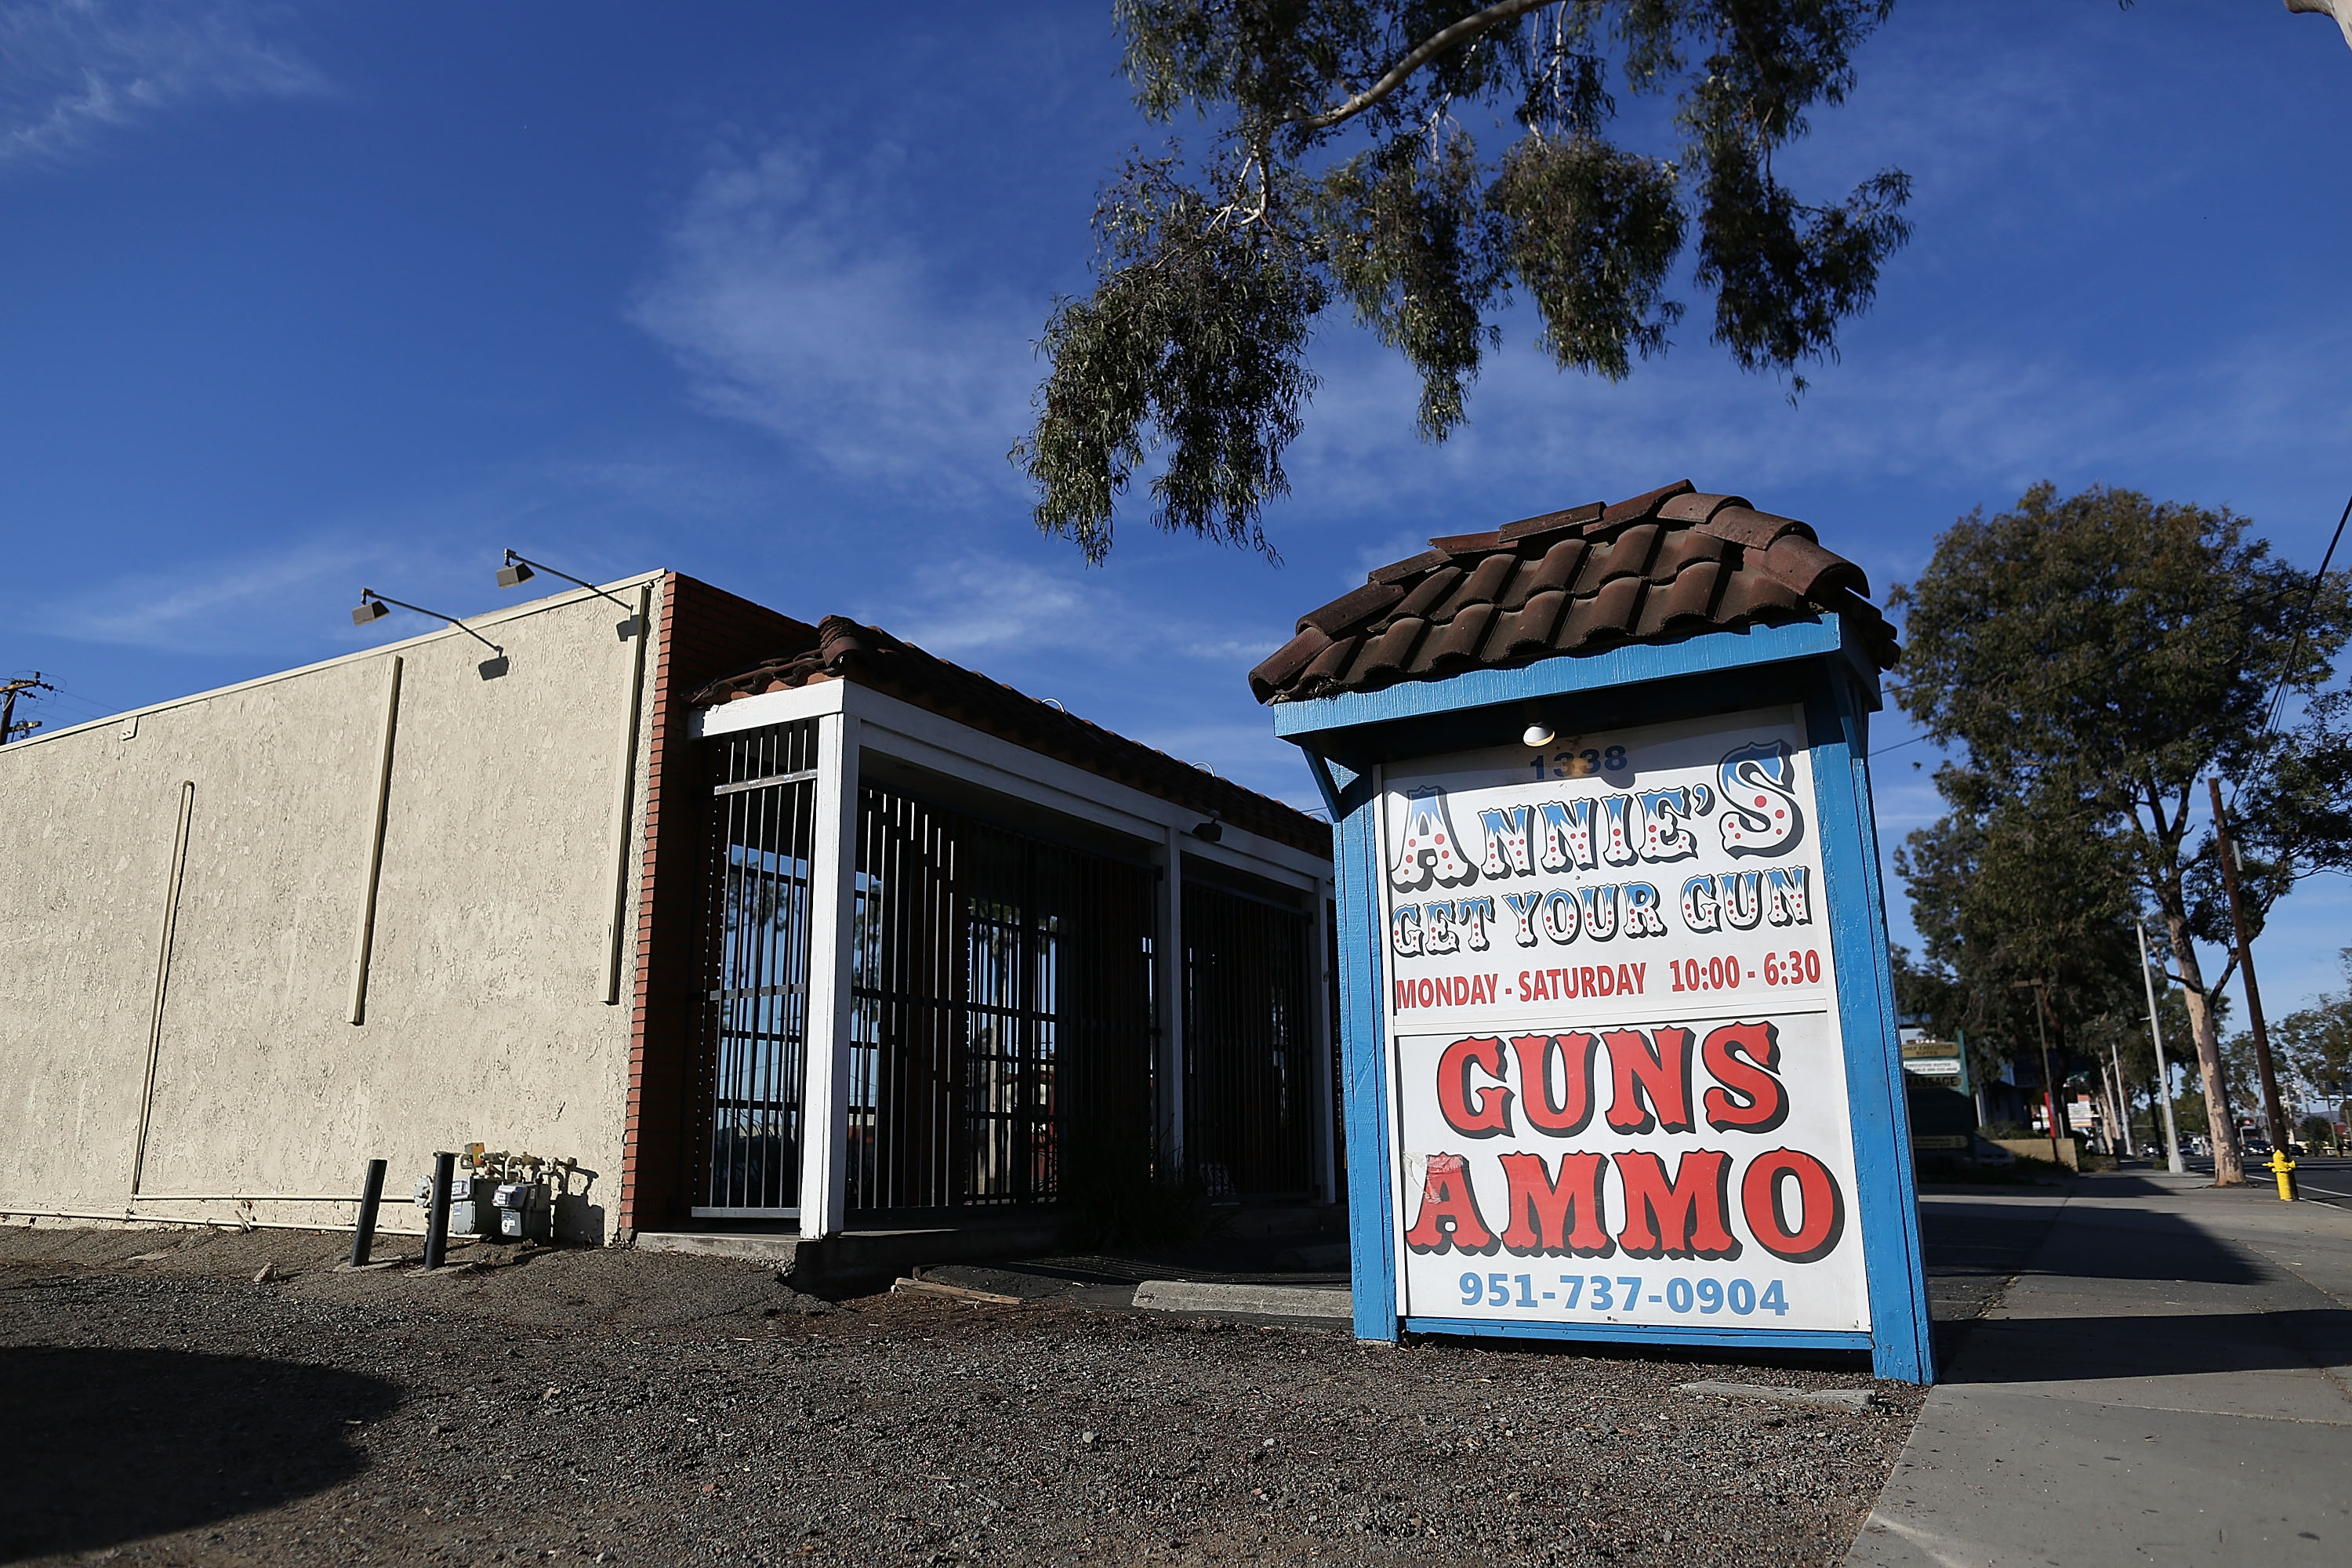 The exterior of Annie's Get Your Gun store is seen where Syed Rizwan Farook is reported to have bought a gun used in the attack at the Inland Regional Center in San Bernardino. (Getty)